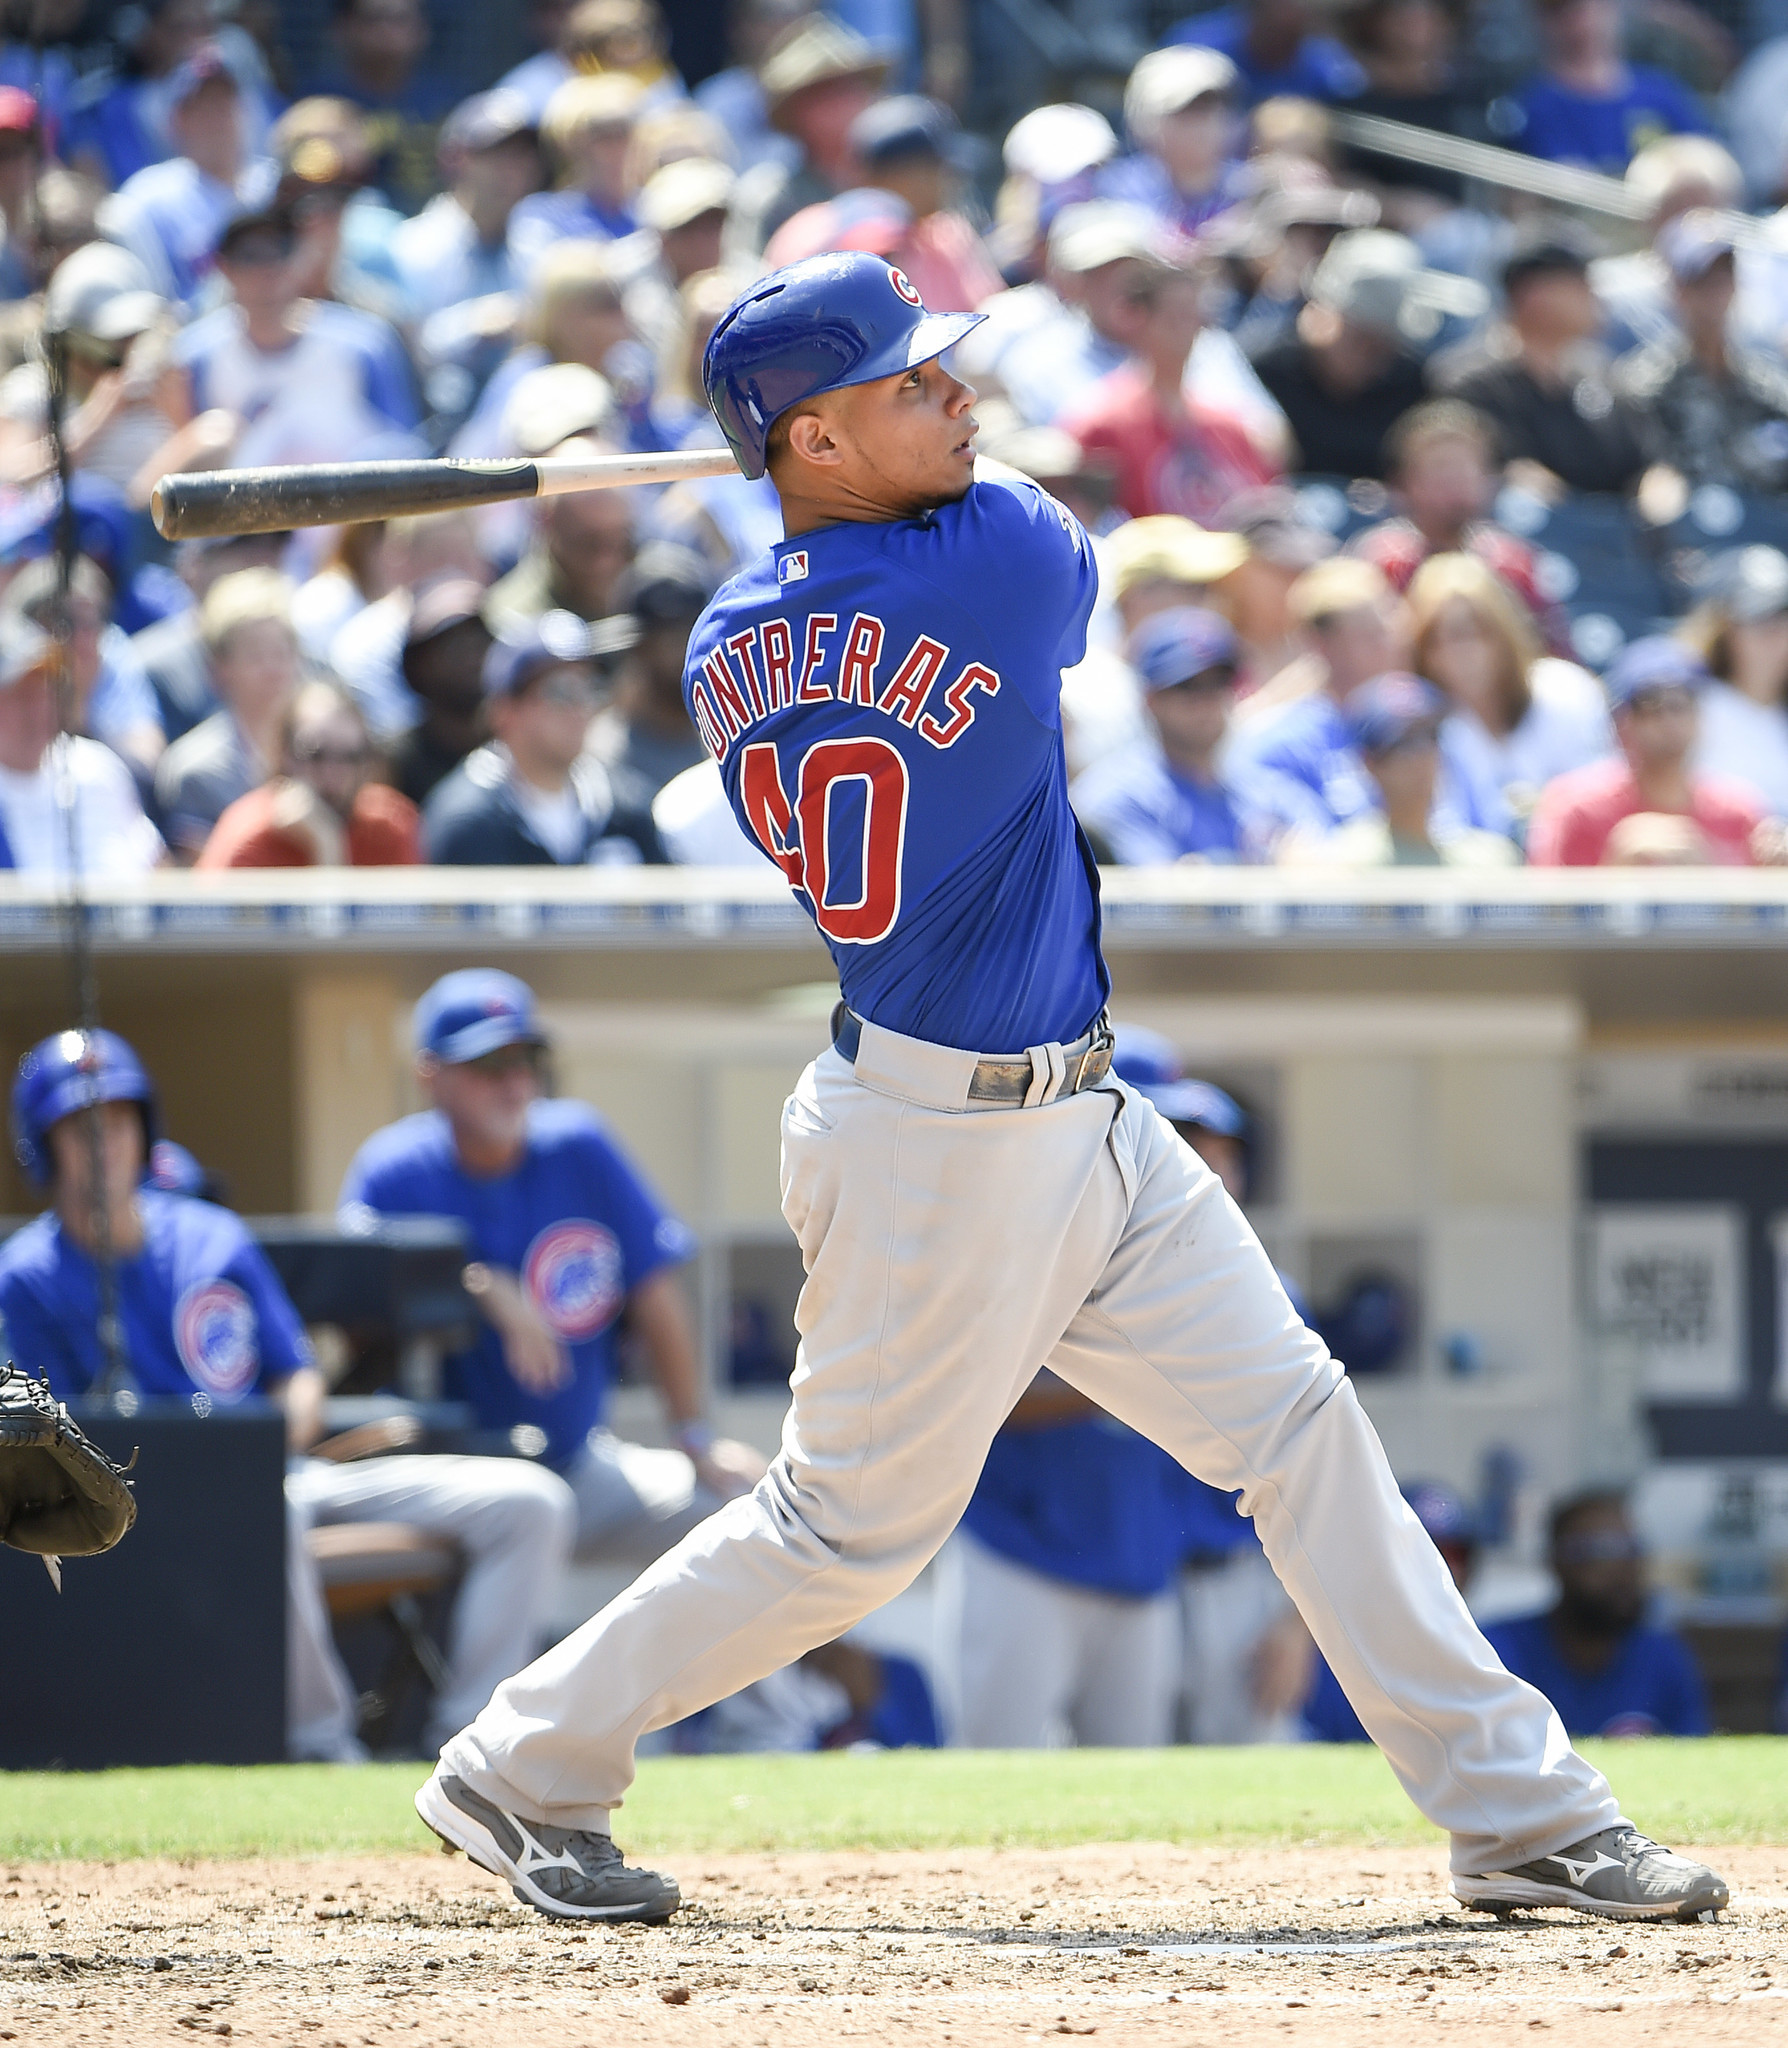 Ct-cubs-hitting-on-display-spt-0825-20160824